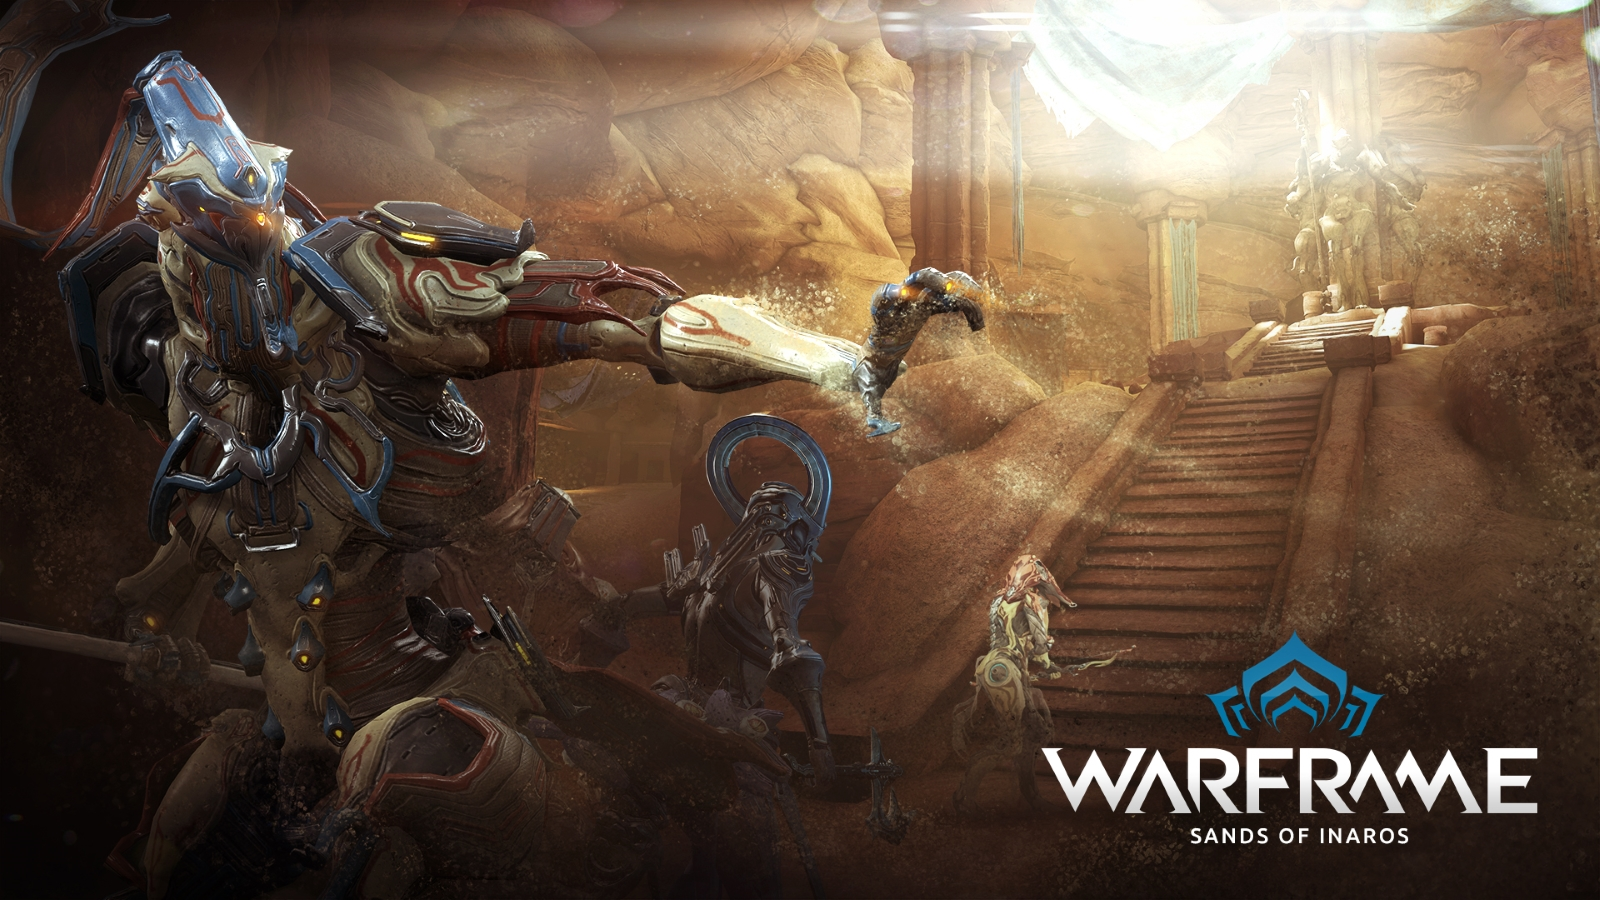 Warframe Sands of Inaros Update Launches